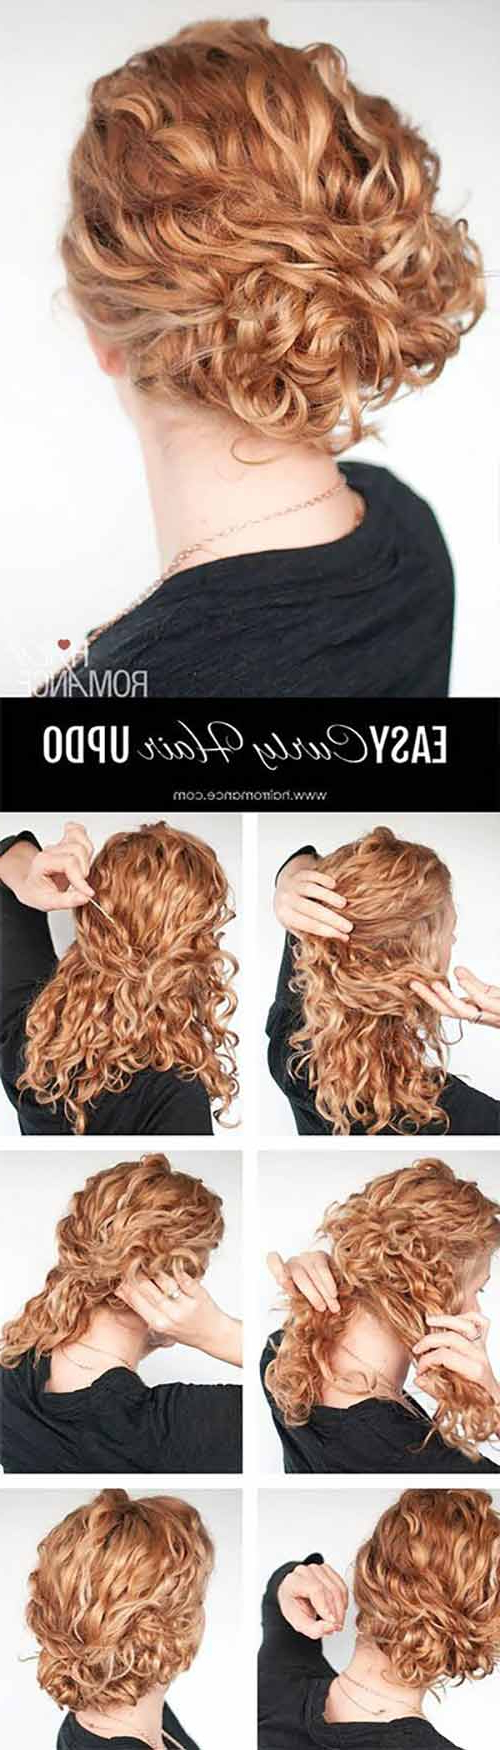 20 Incredibly Stunning Diy Updos For Curly Hair Within Popular Elegant Messy Updo Hairstyles On Curly Hair (View 9 of 20)